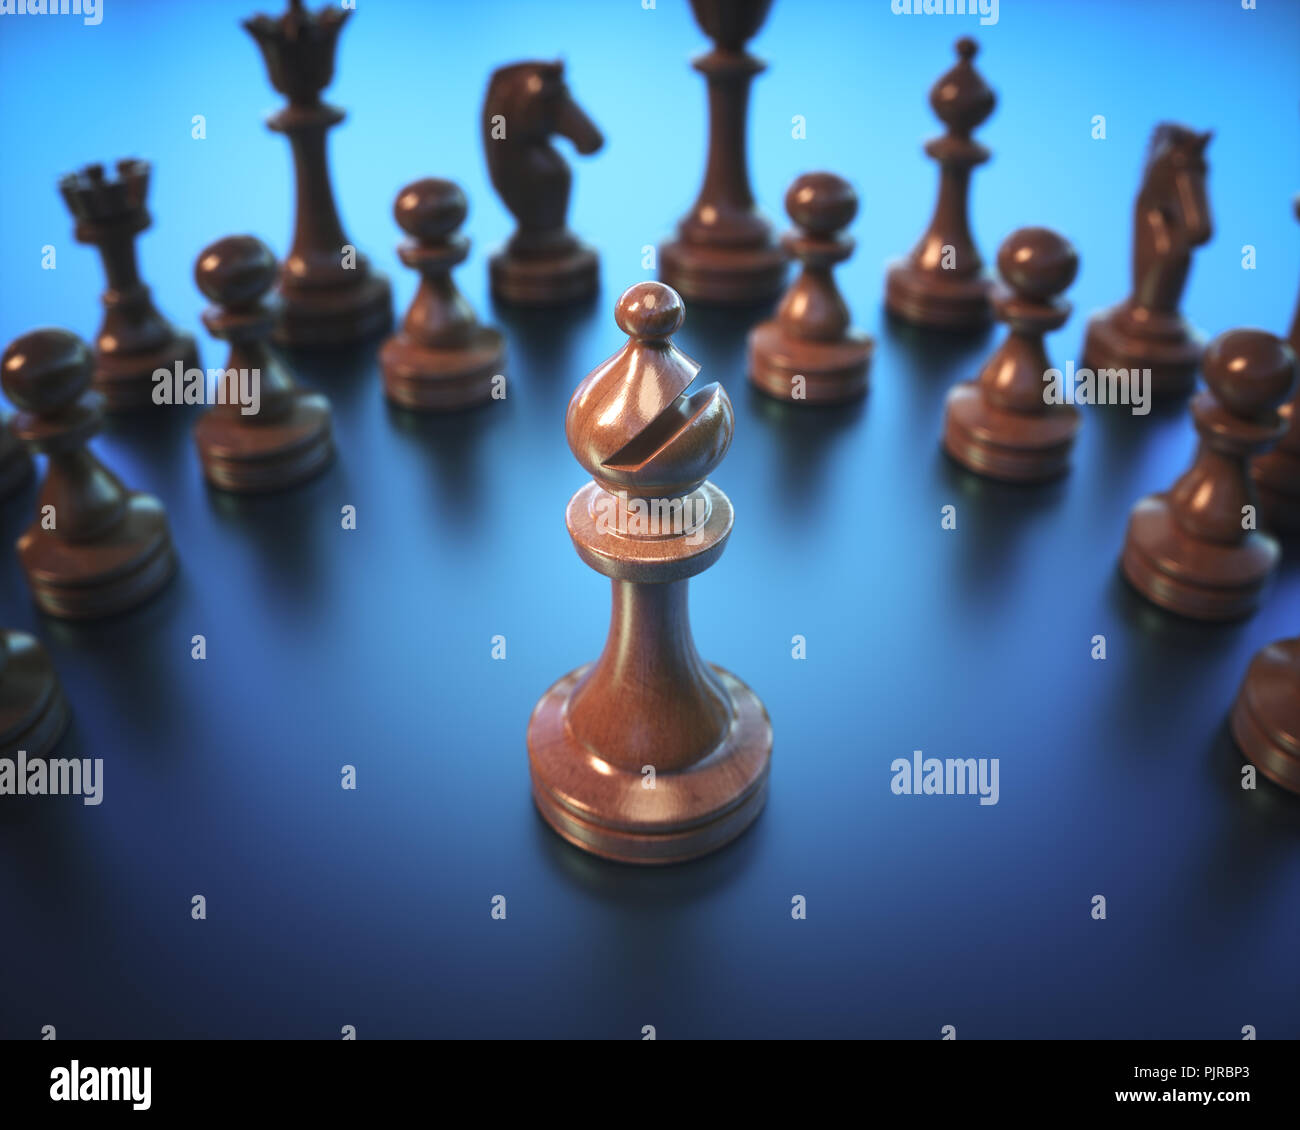 The Bishop in highlight. Pieces of chess game, image with shallow depth of field. - Stock Image